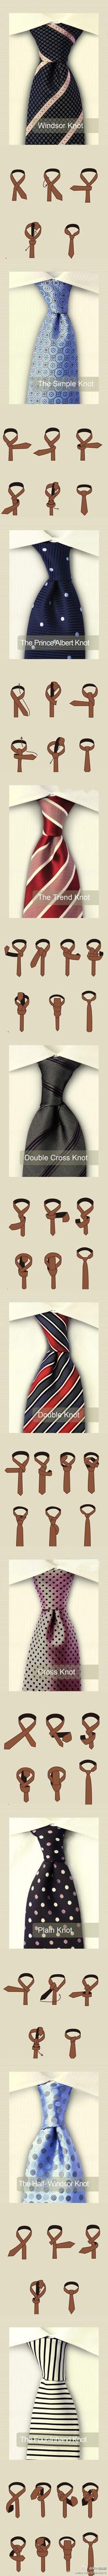 Different tie knots ...